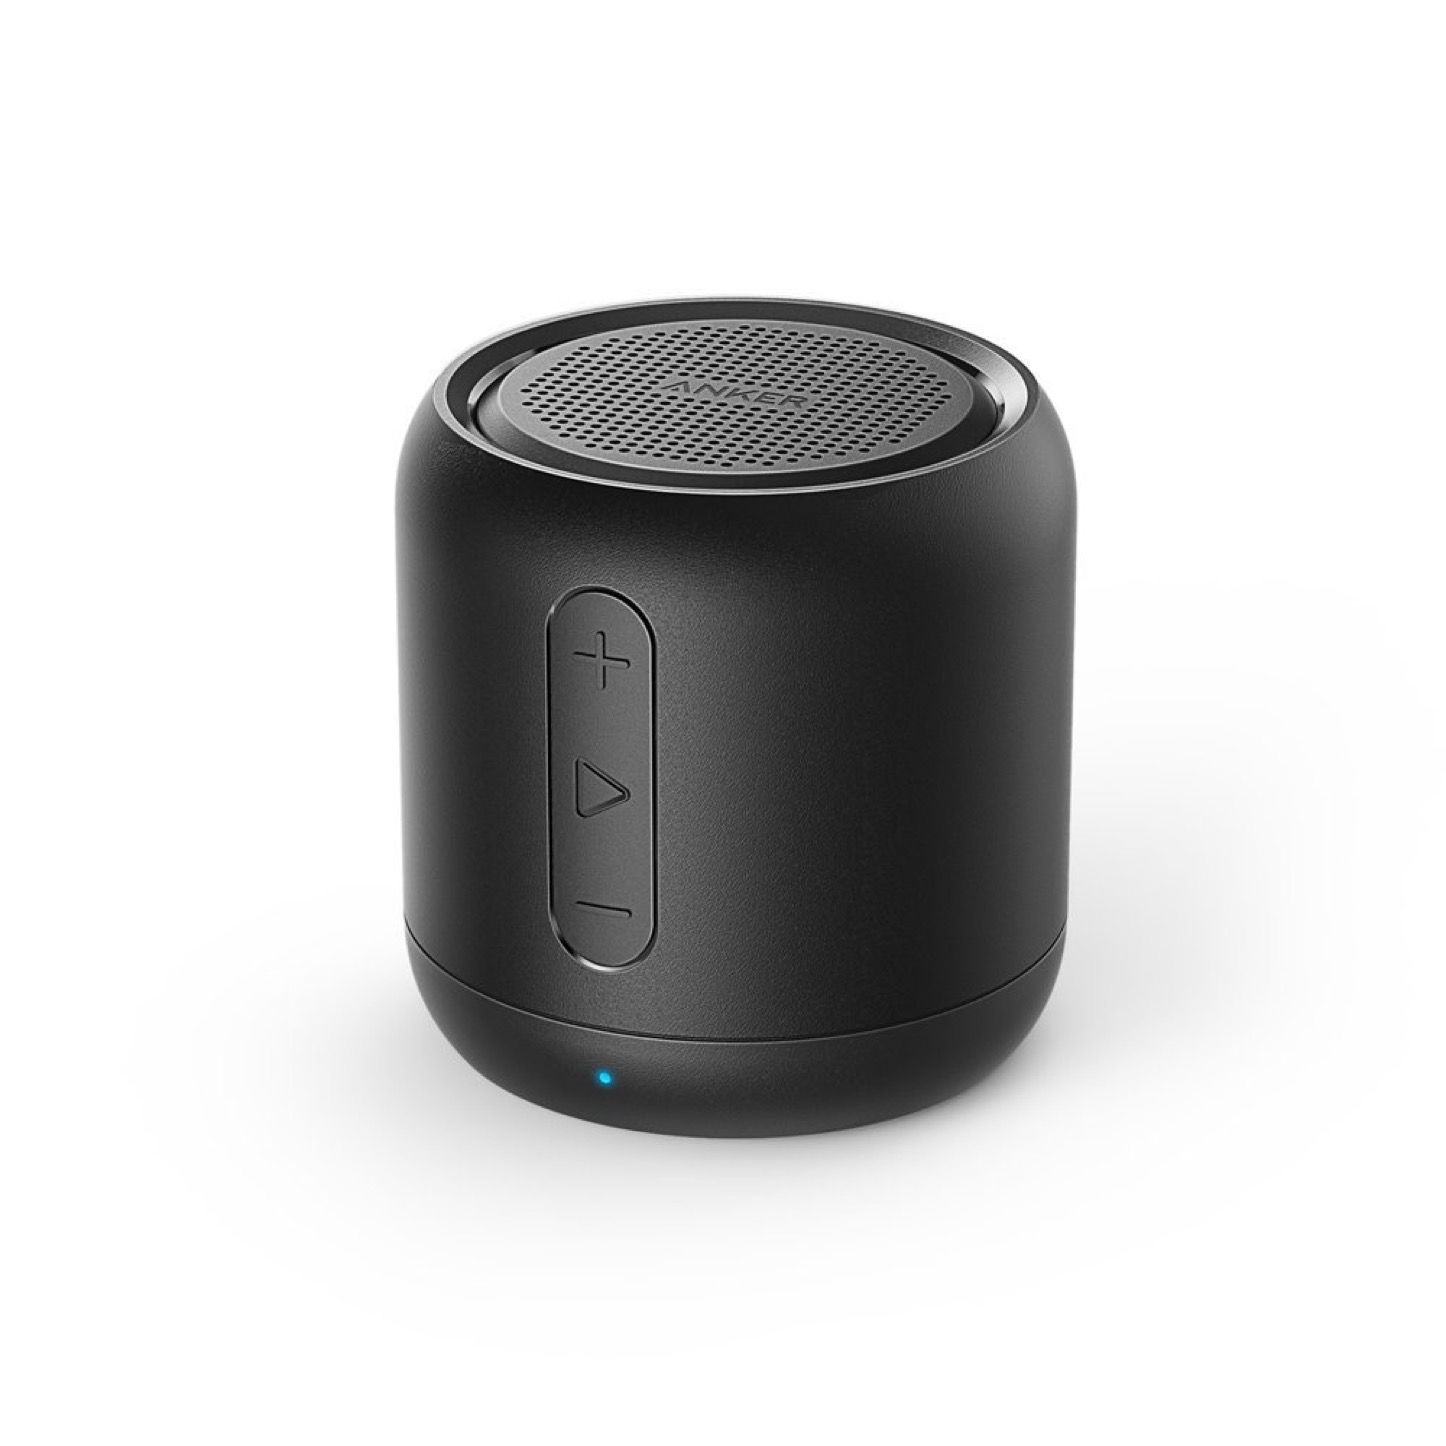 Anker-SoundCore-Mini-01.jpg